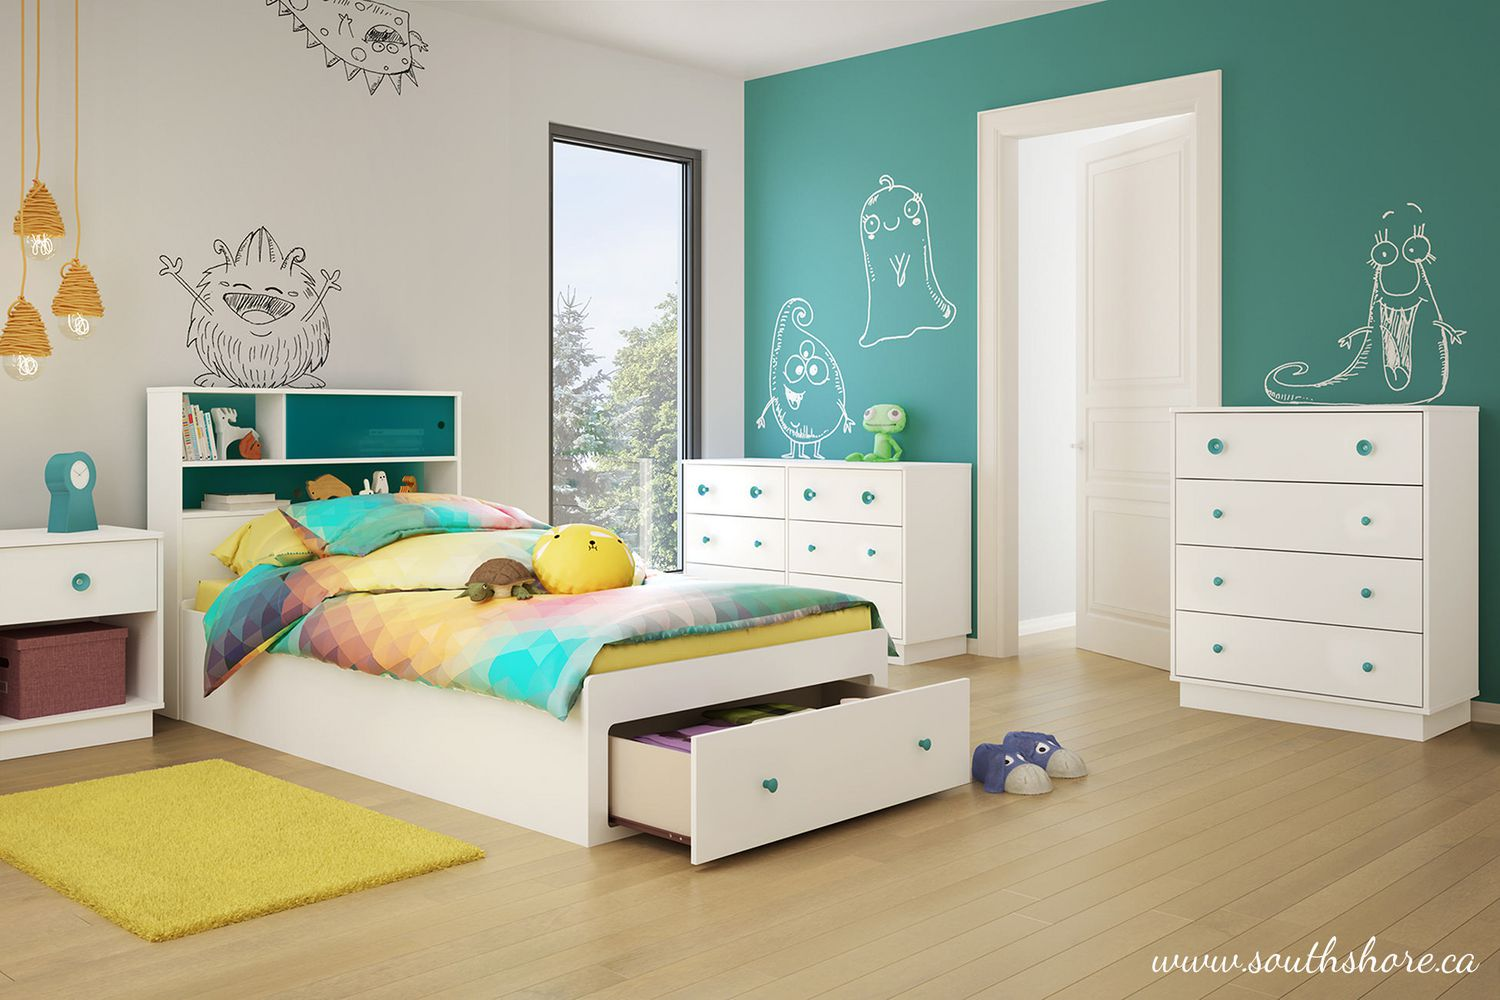 Bedroom Sets Sacramento south shore bedroom sets | mattress